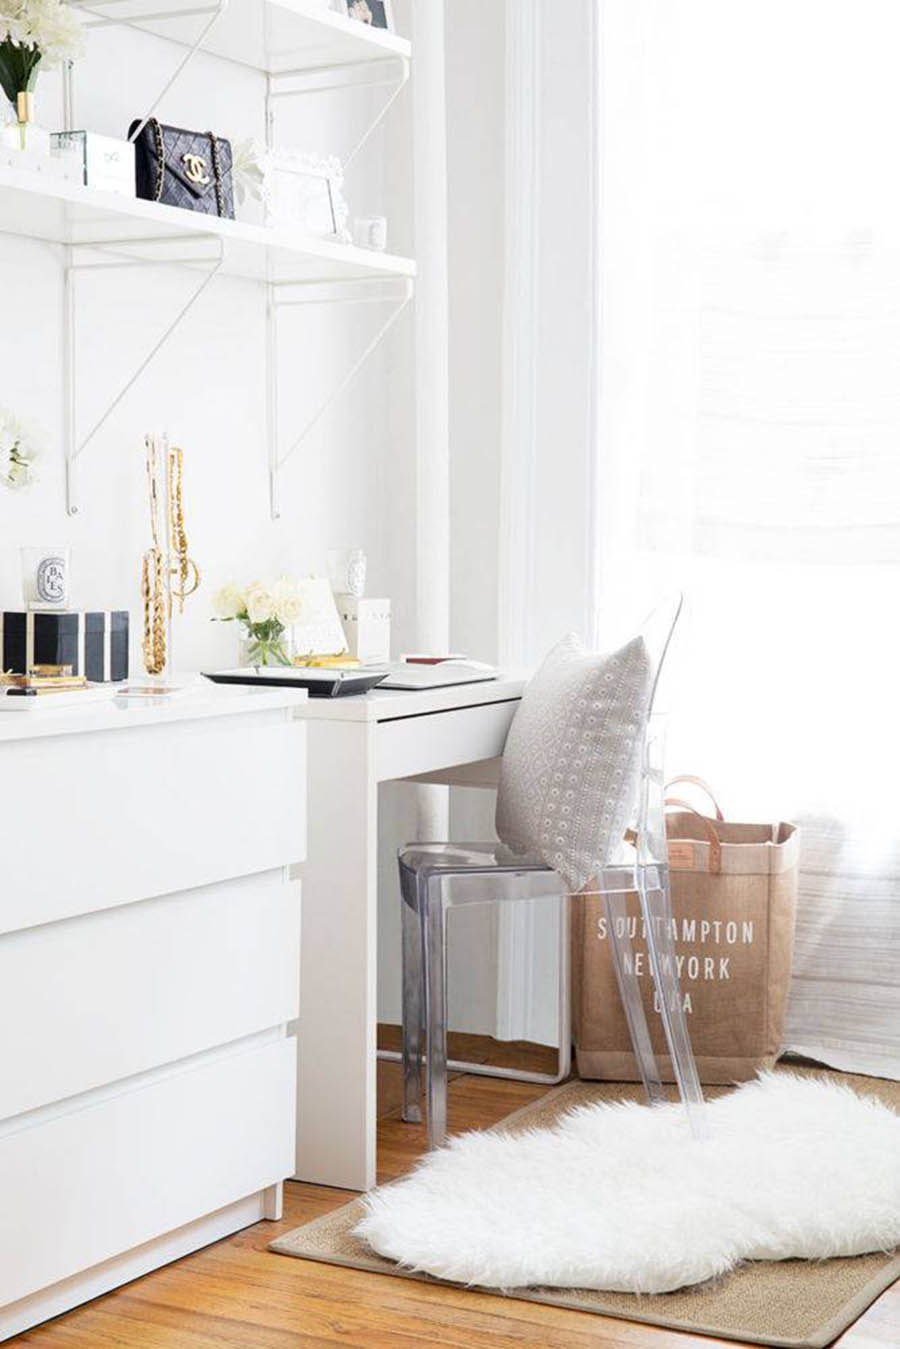 Home Inspiration // A Pretty & Functional 450 Square Foot Apartment-Condo